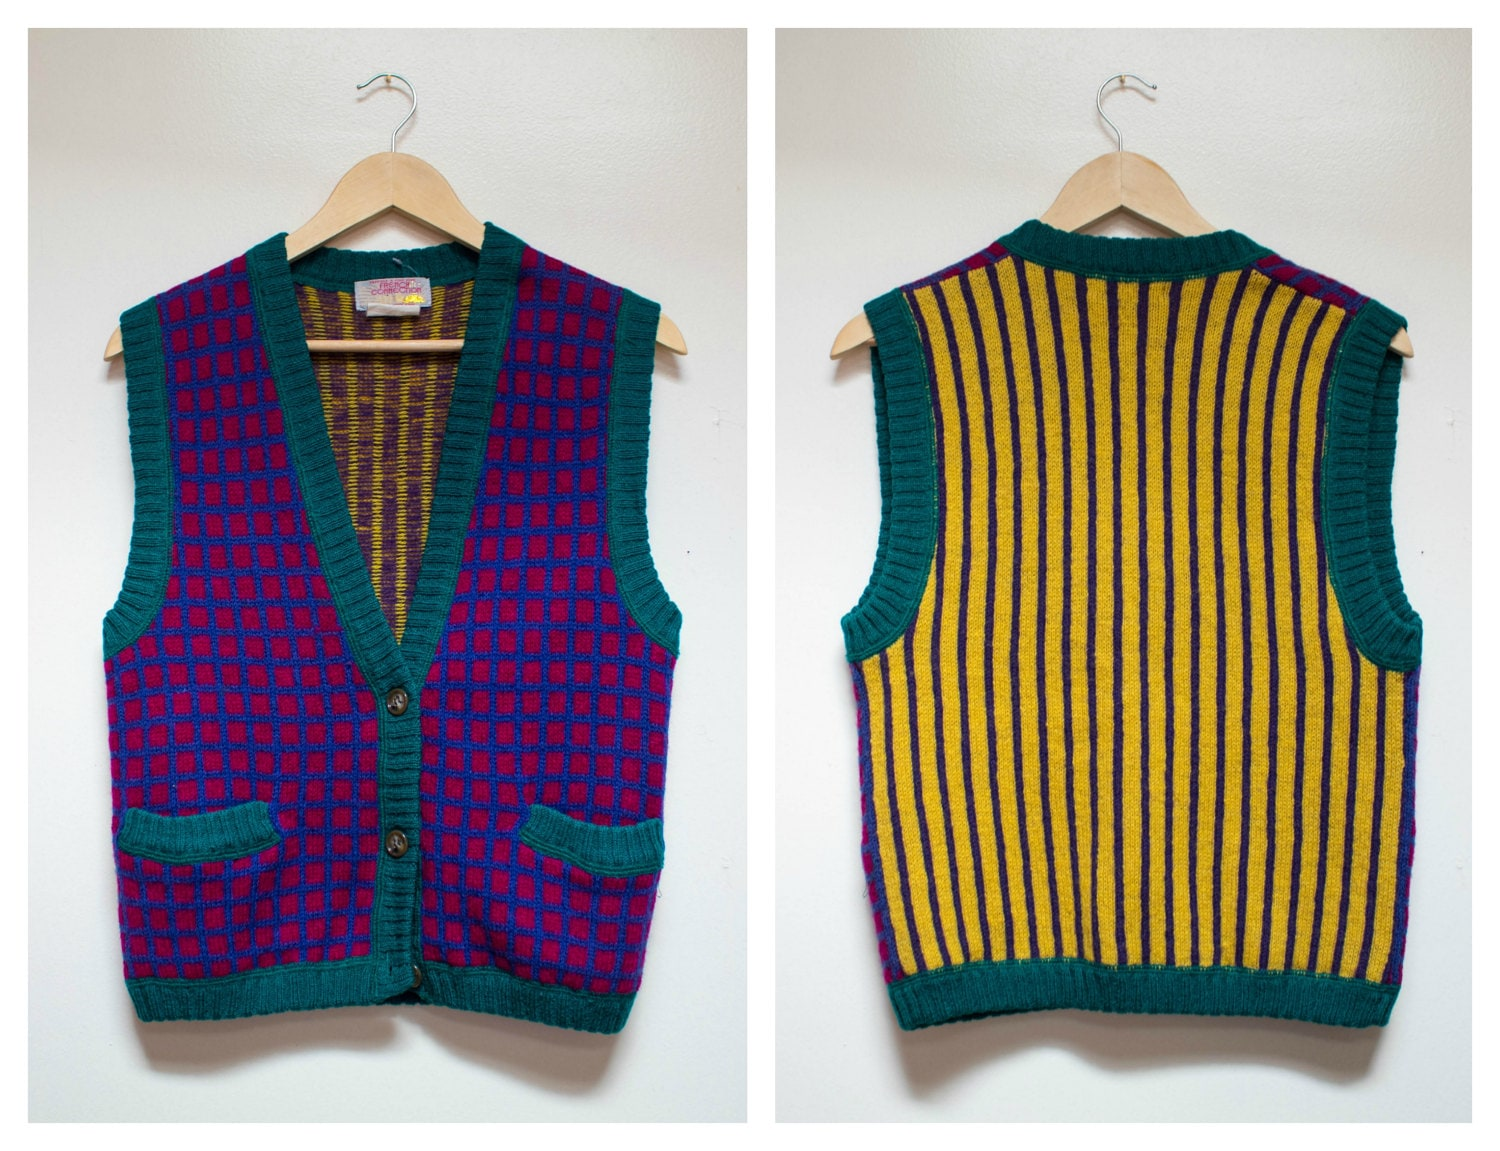 Vintage 100% Wool Vest French Connection Size S Striped Plaid Vest Mustard Purple Kooky Sweater Party Sweater Made in Hong Kong uK8c35Yos